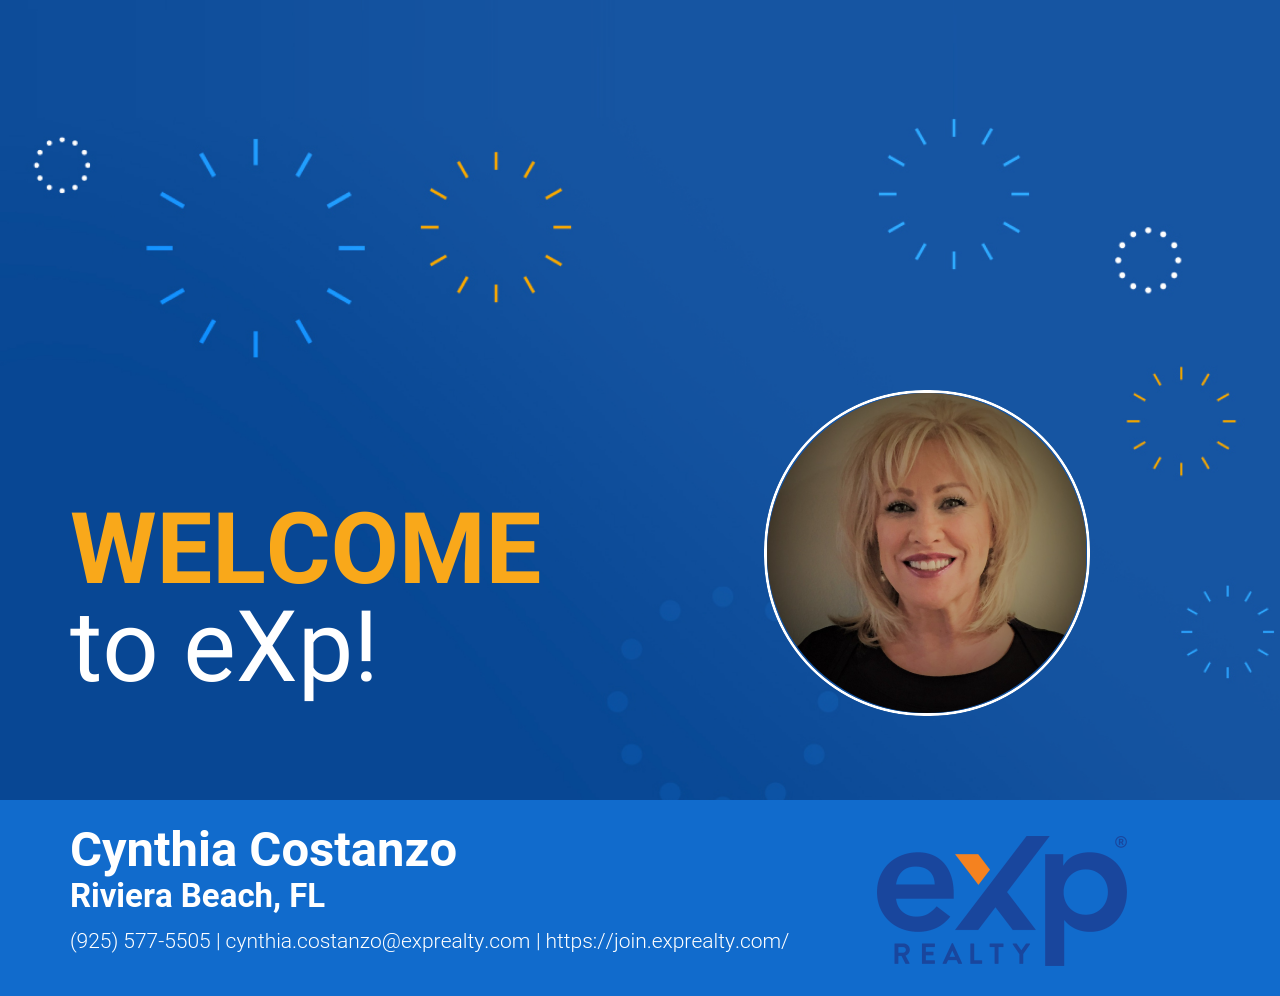 Cynthia Costanzo Joined eXp Realty!